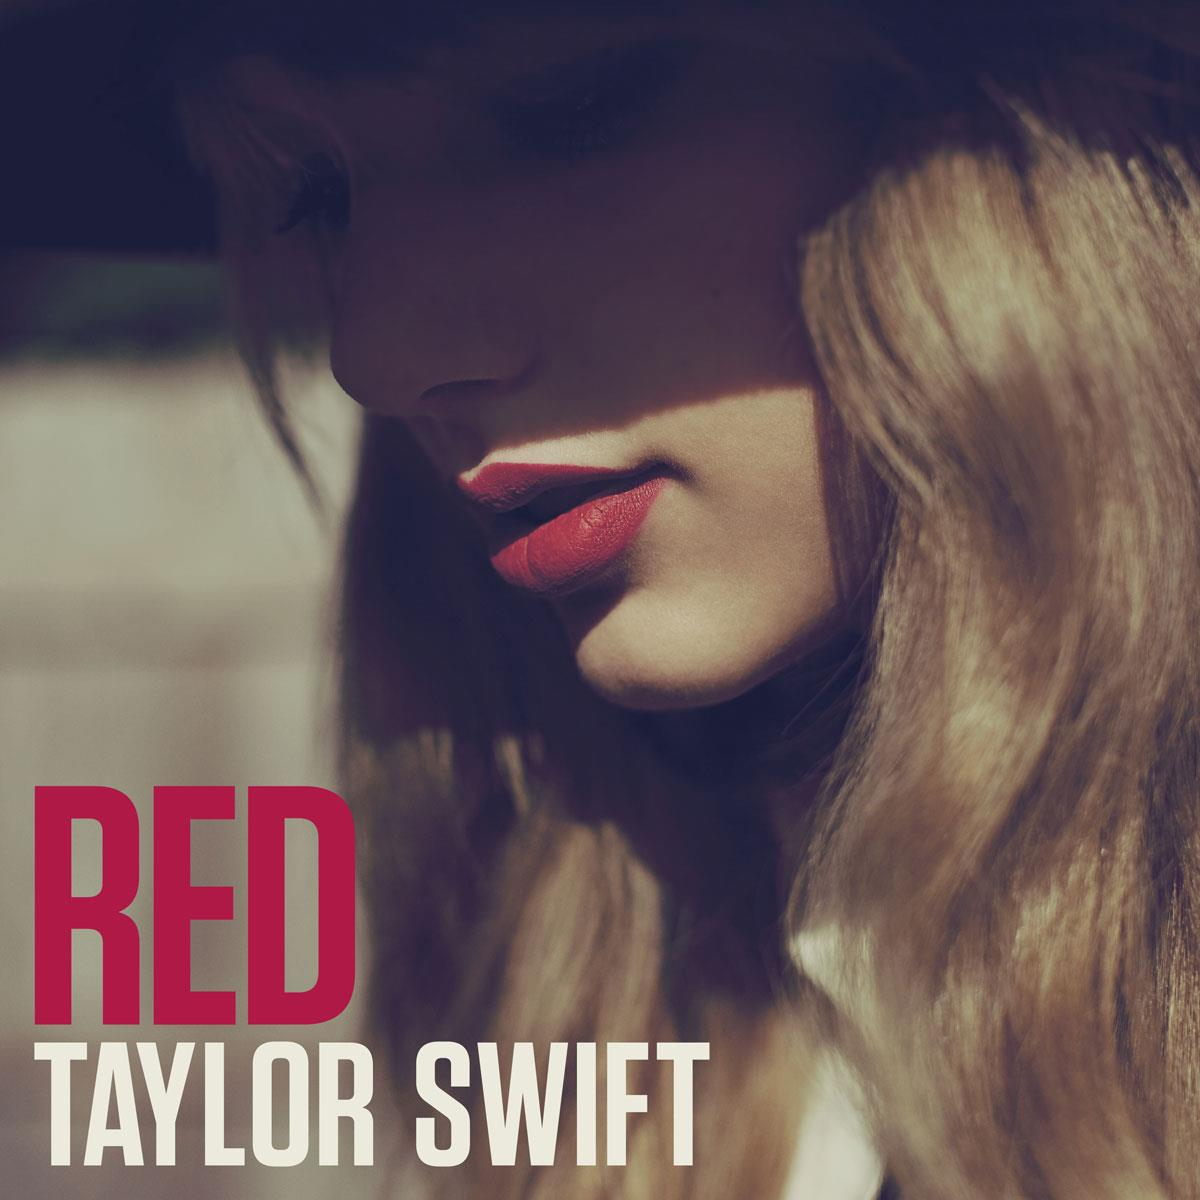 Taylor Swift 'Red' 2012